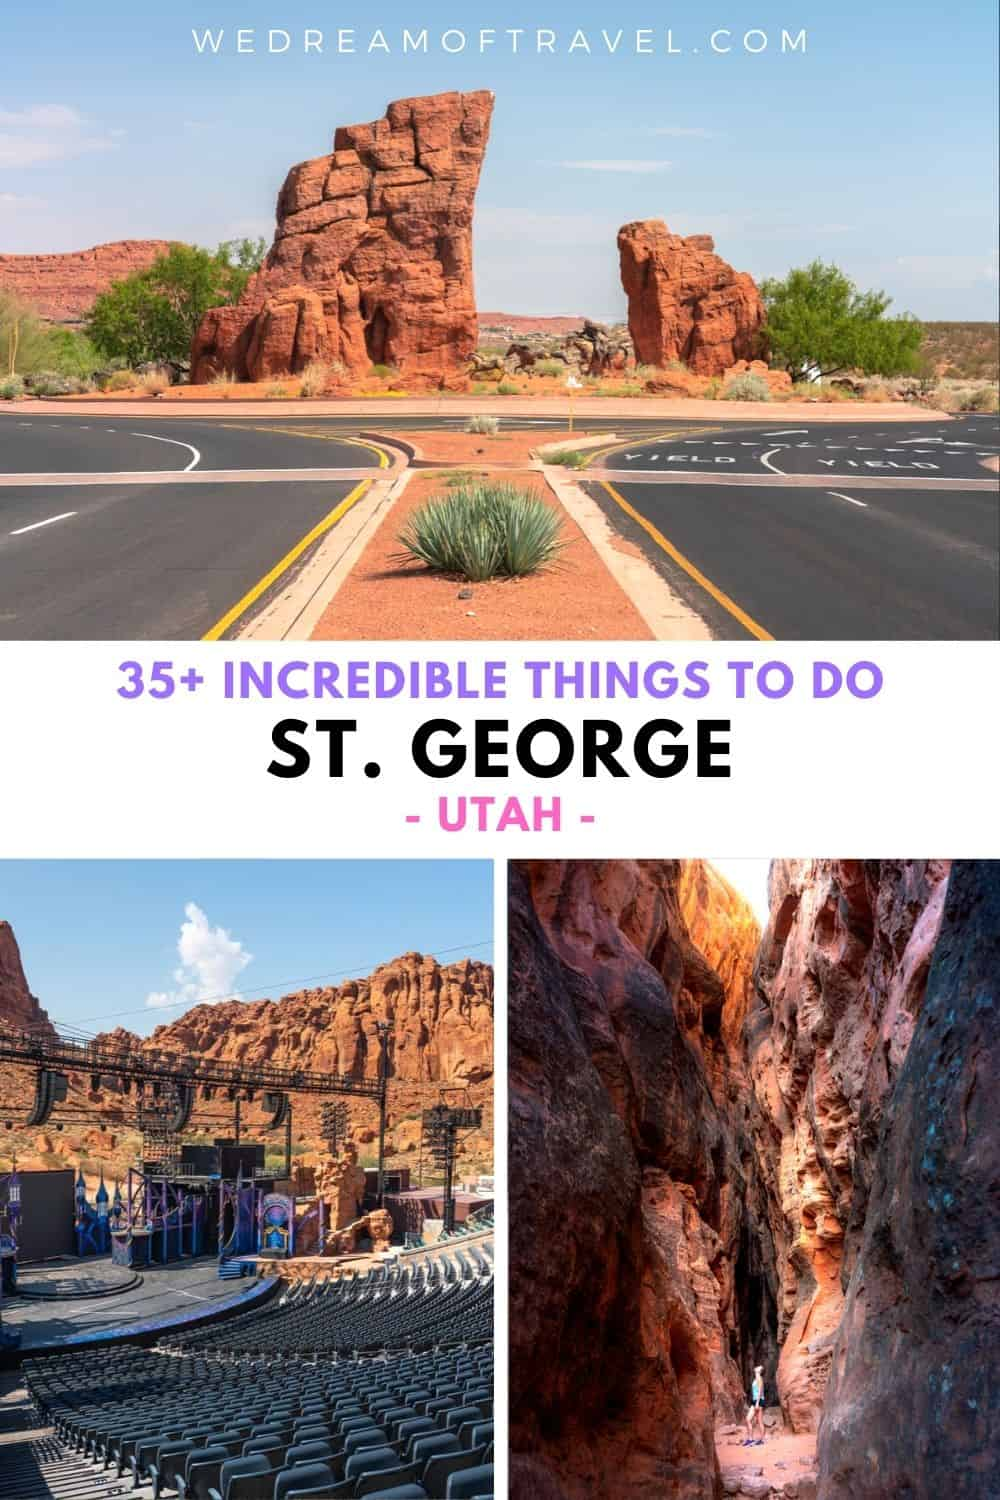 As a gateway to Zion National Park, St George often gets overlooked.  However, you'll find plenty of fun things to do in St George, from incredible hikes, to beautiful state parks, historical downtown, dinosaur footprints and so much more!